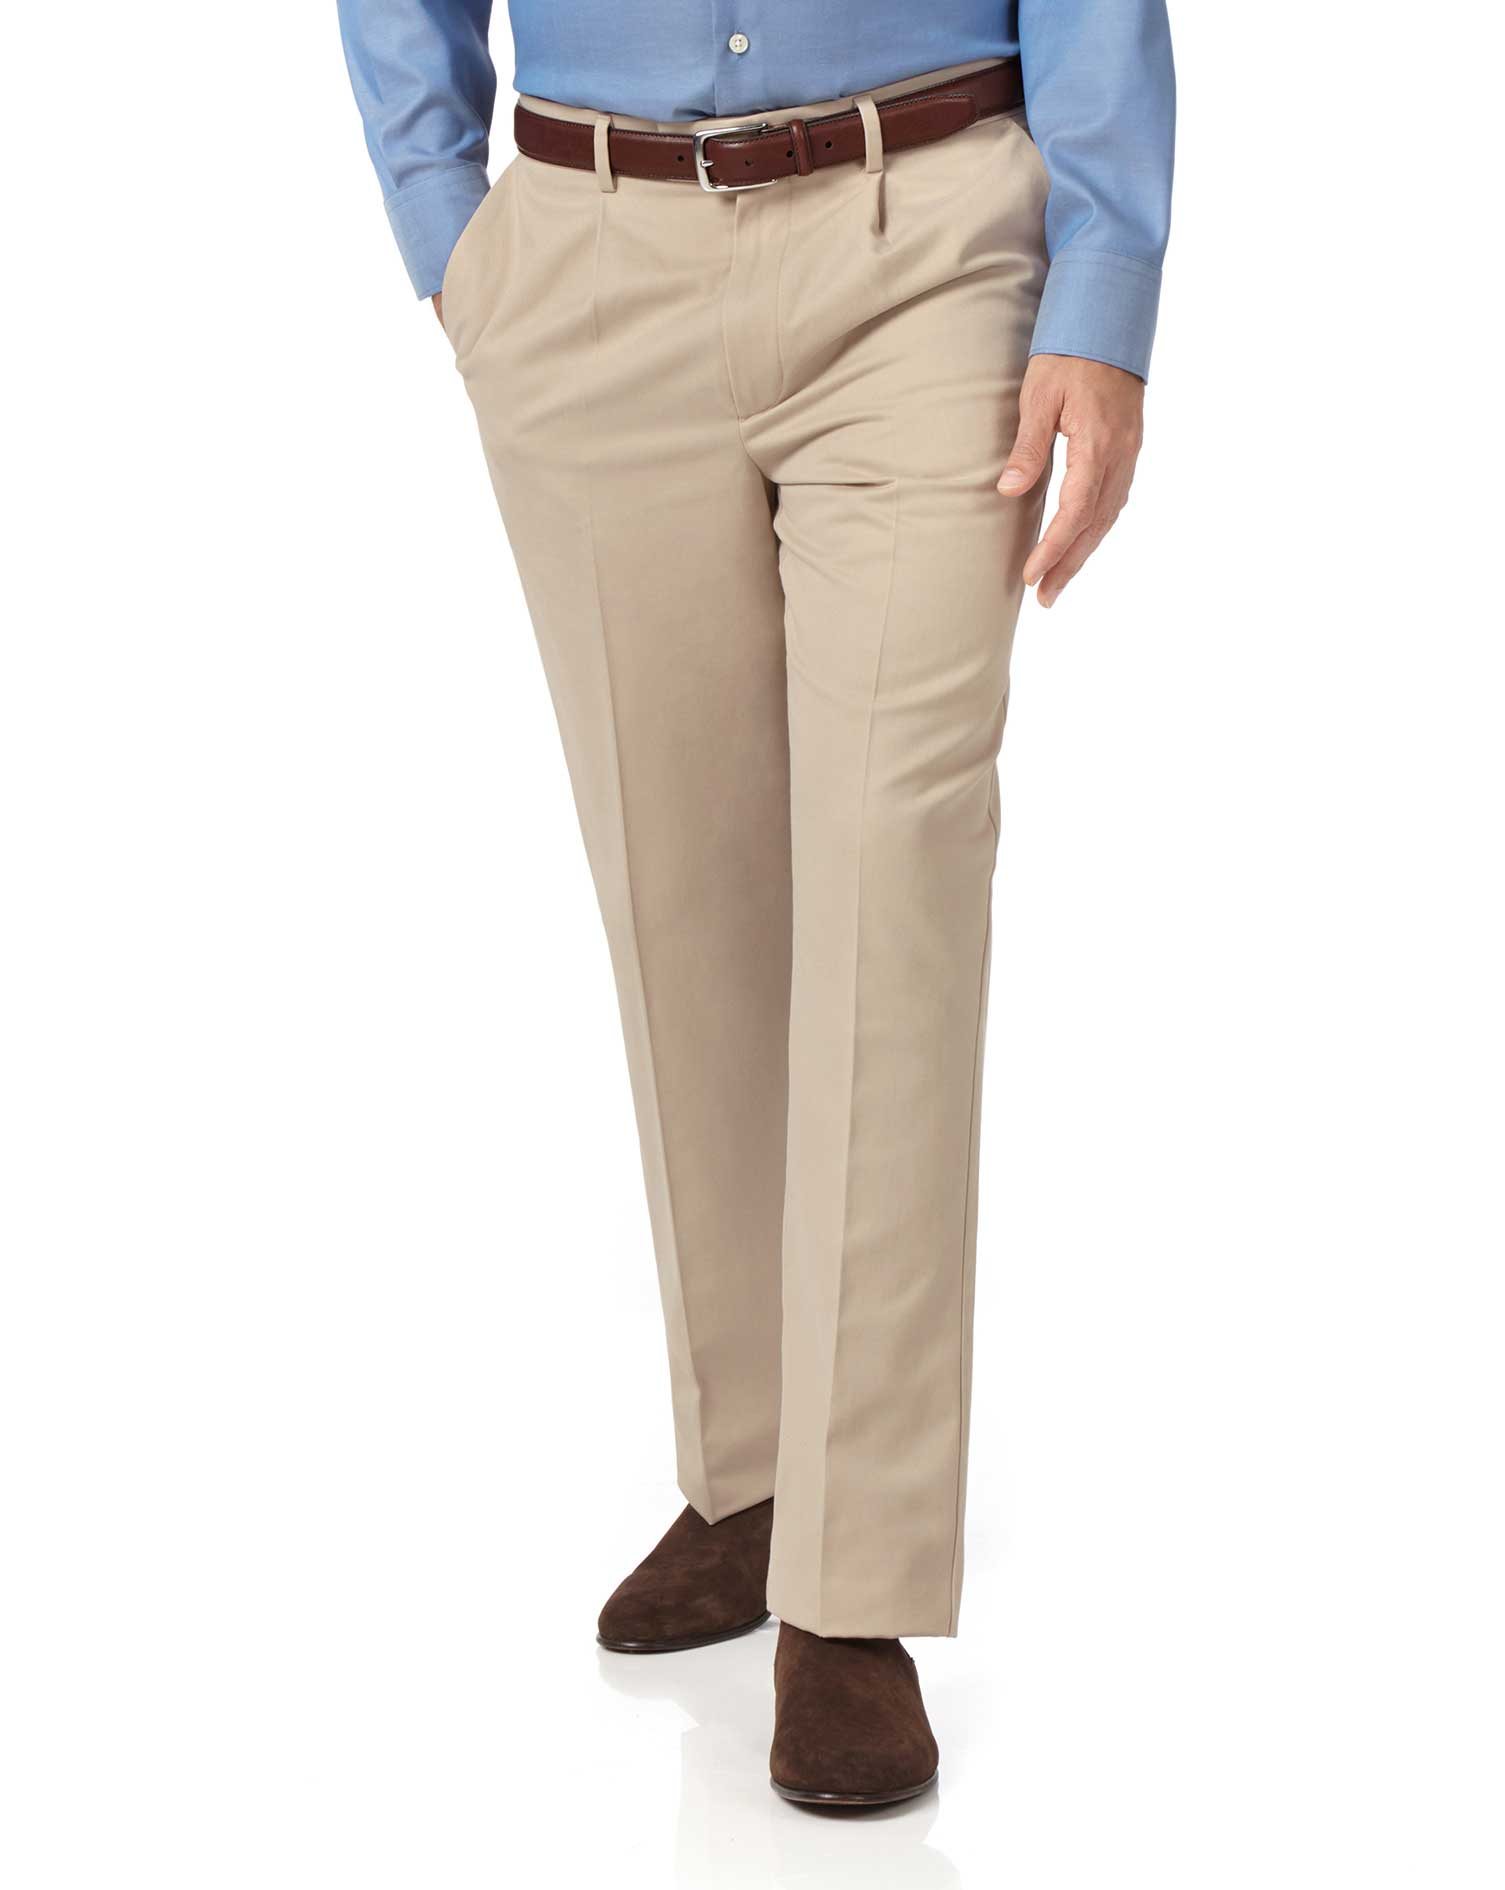 Stone Classic Fit Single Pleat Non-Iron Cotton Chino Trousers Size W38 L29 by Charles Tyrwhitt